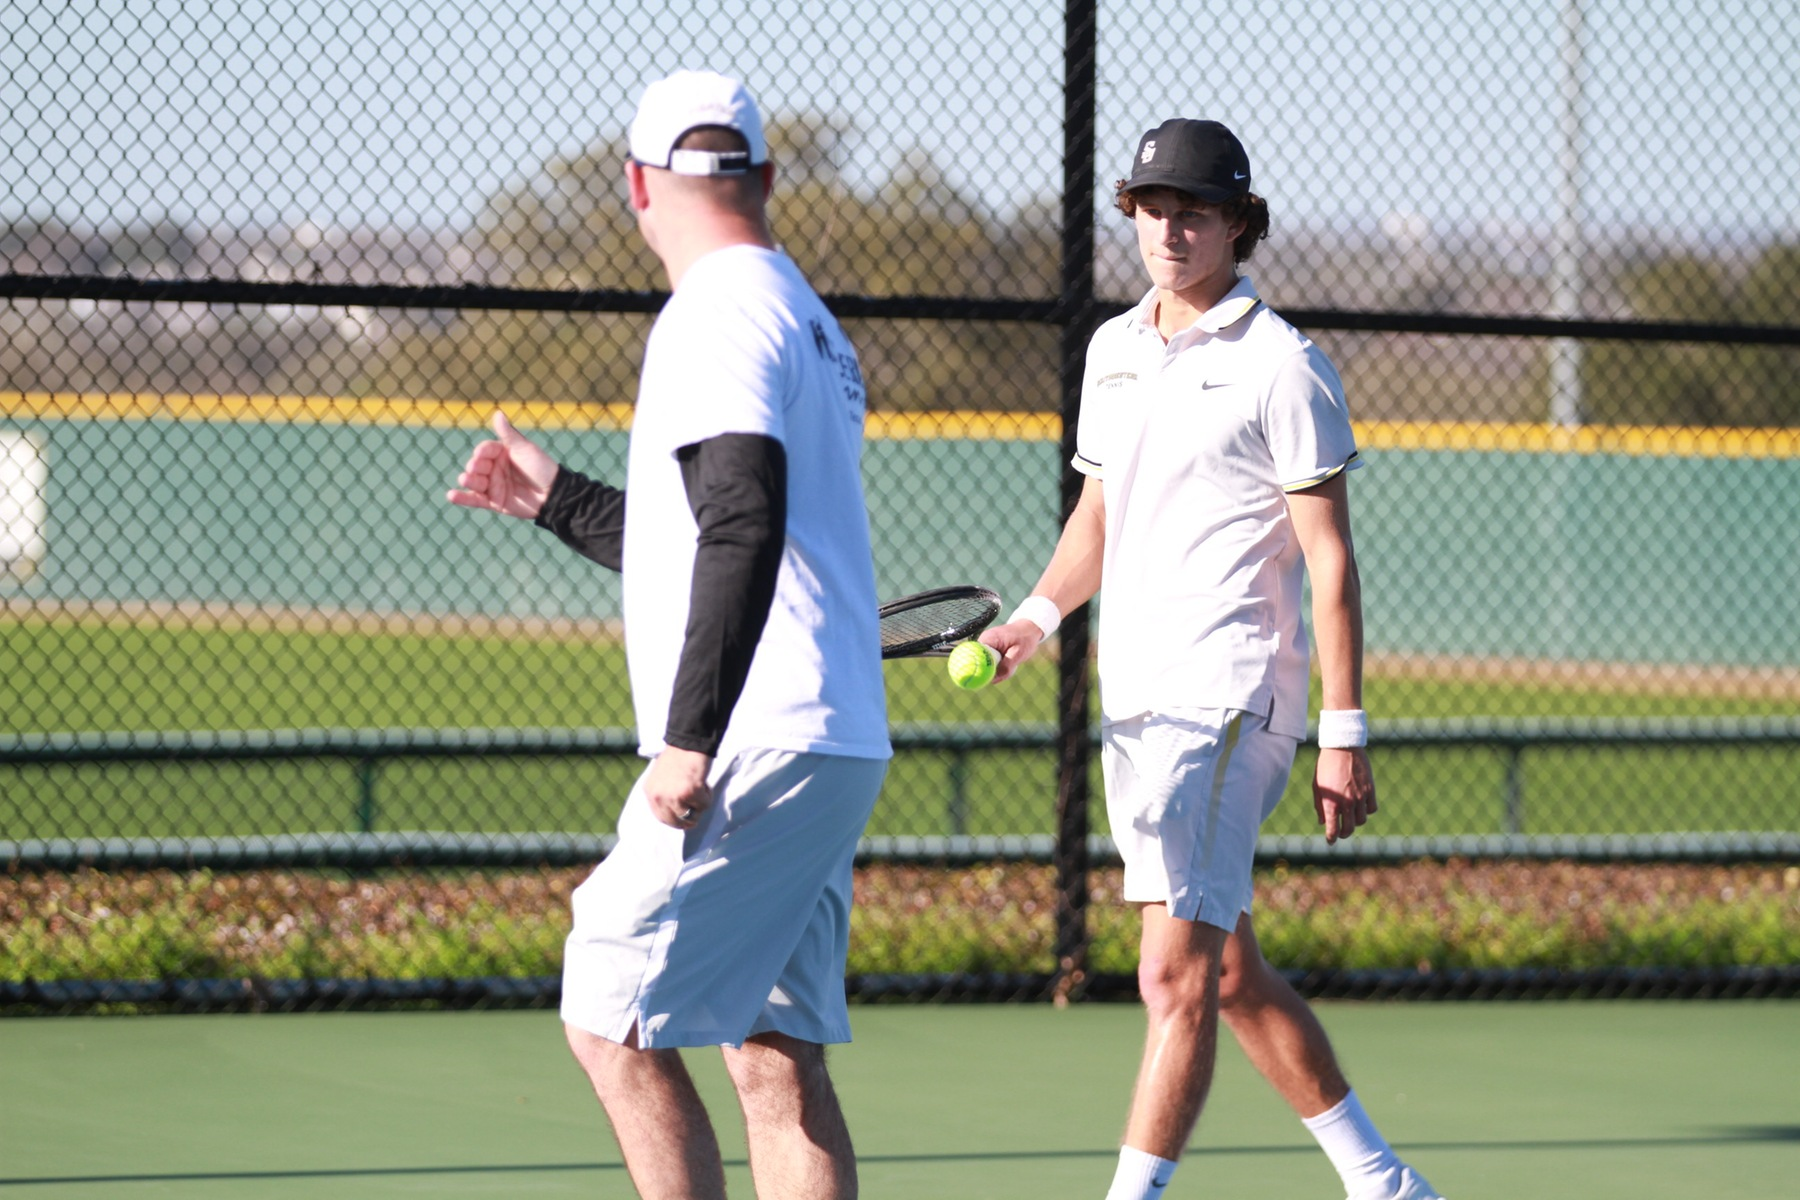 Men's Tennis Sweeps Centenary in Final Regular Season Match